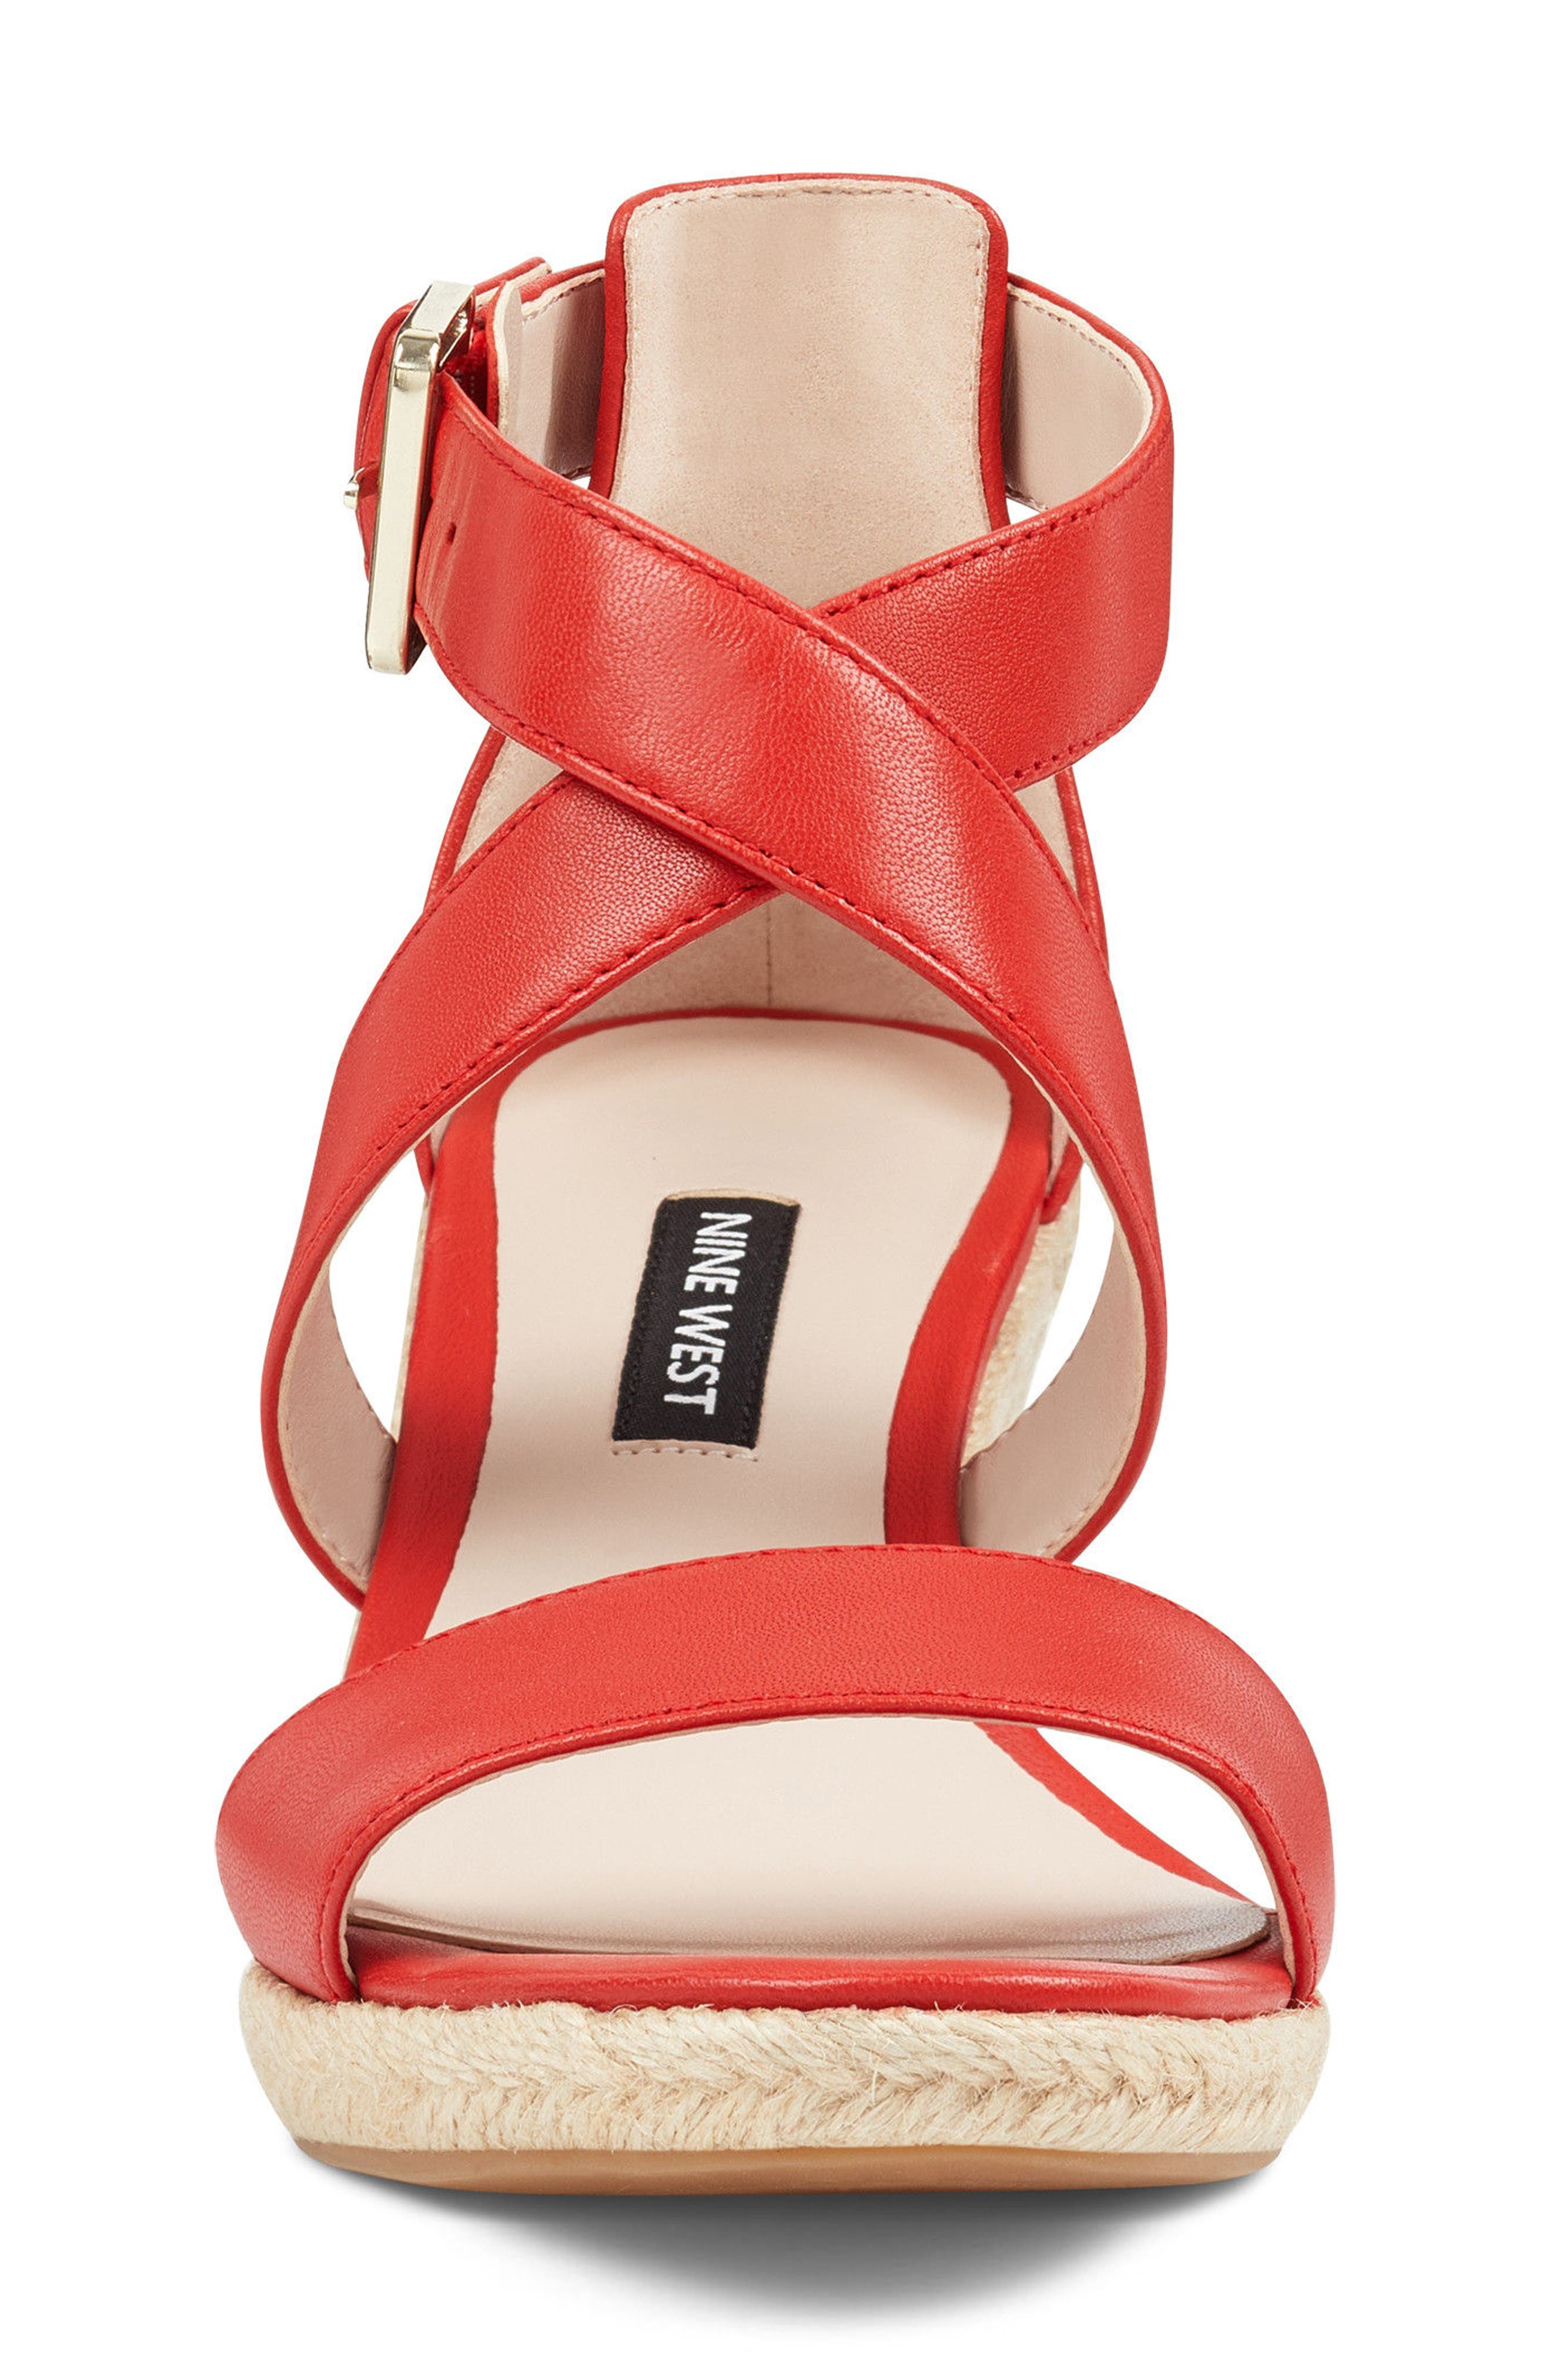 Jorjapeach Espadrille Wedge Sandal,                             Alternate thumbnail 4, color,                             RED LEATHER